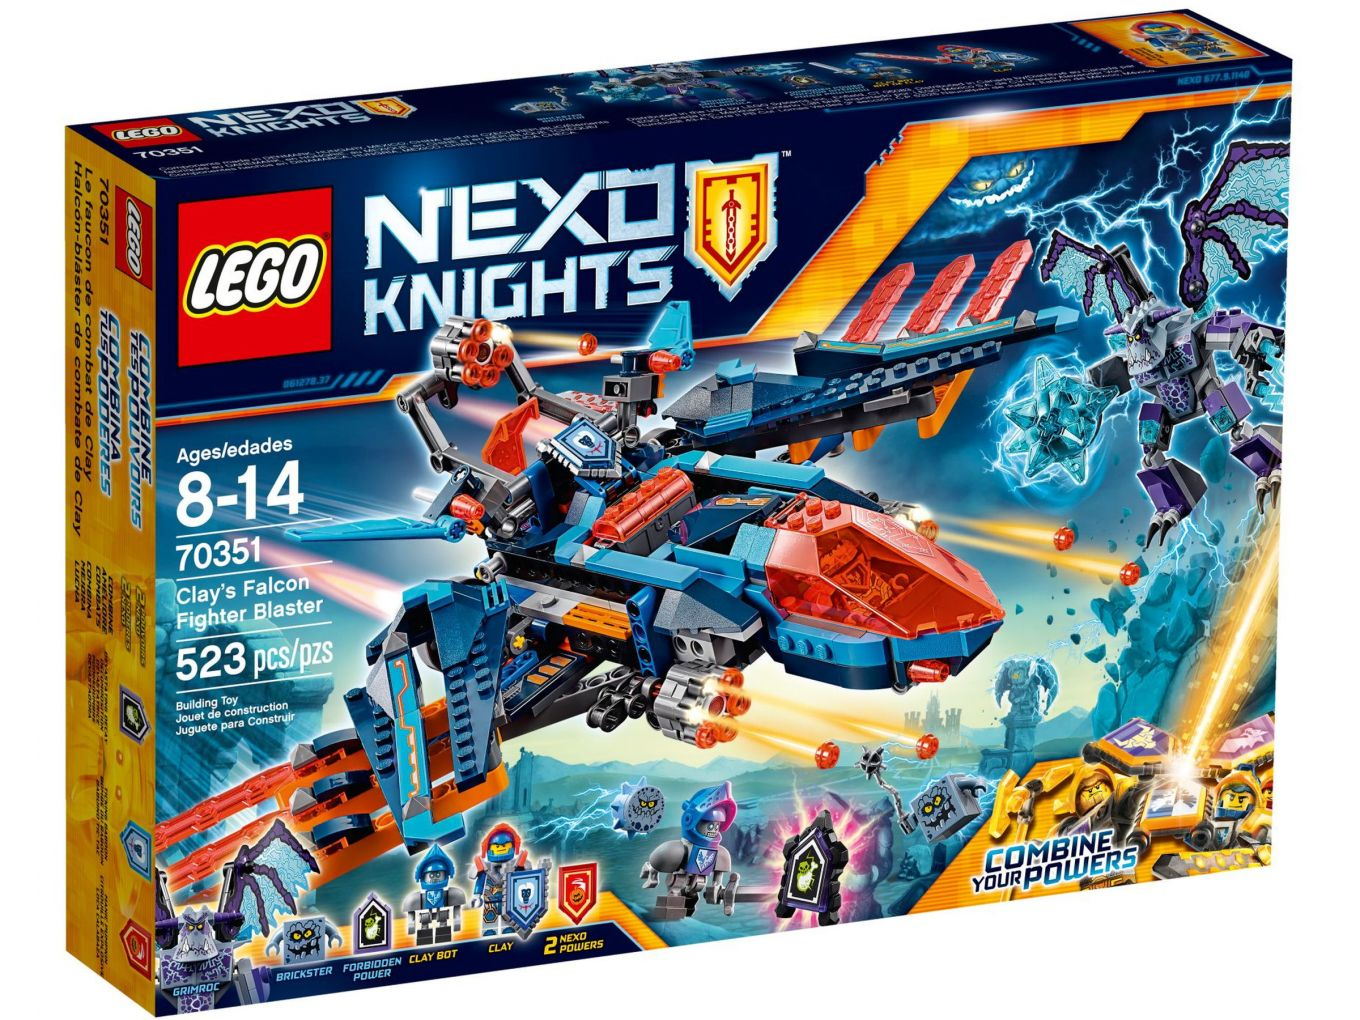 LEGO Nexo Knights 70351 Clay's Falcon Gevechtsblaster